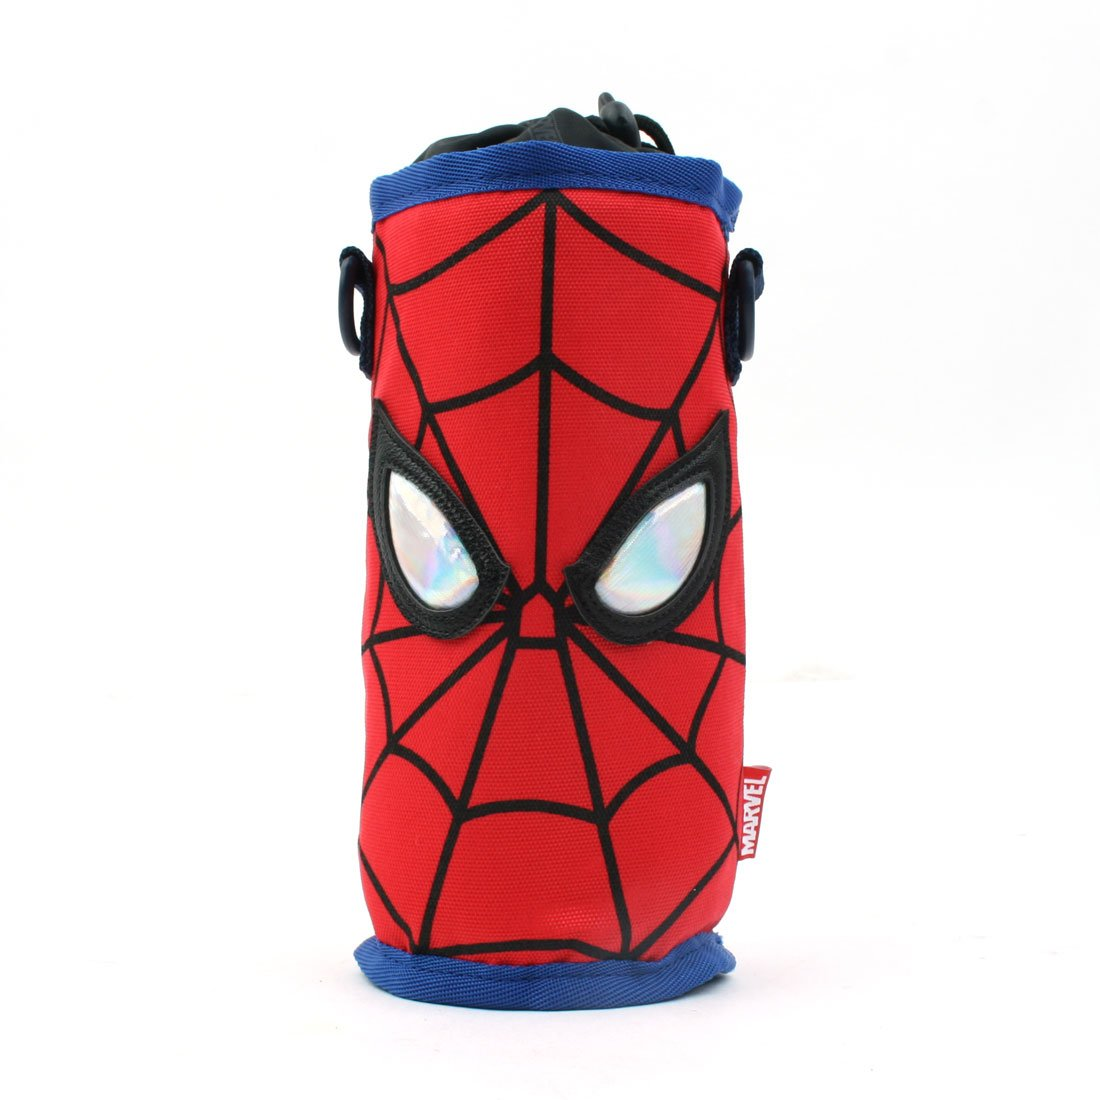 WINGHOUSE x Marvel Spider-Man Water Bottle Sleeve Bottle holder Cross body Bag with Shoulder Strap for Pre-Teen